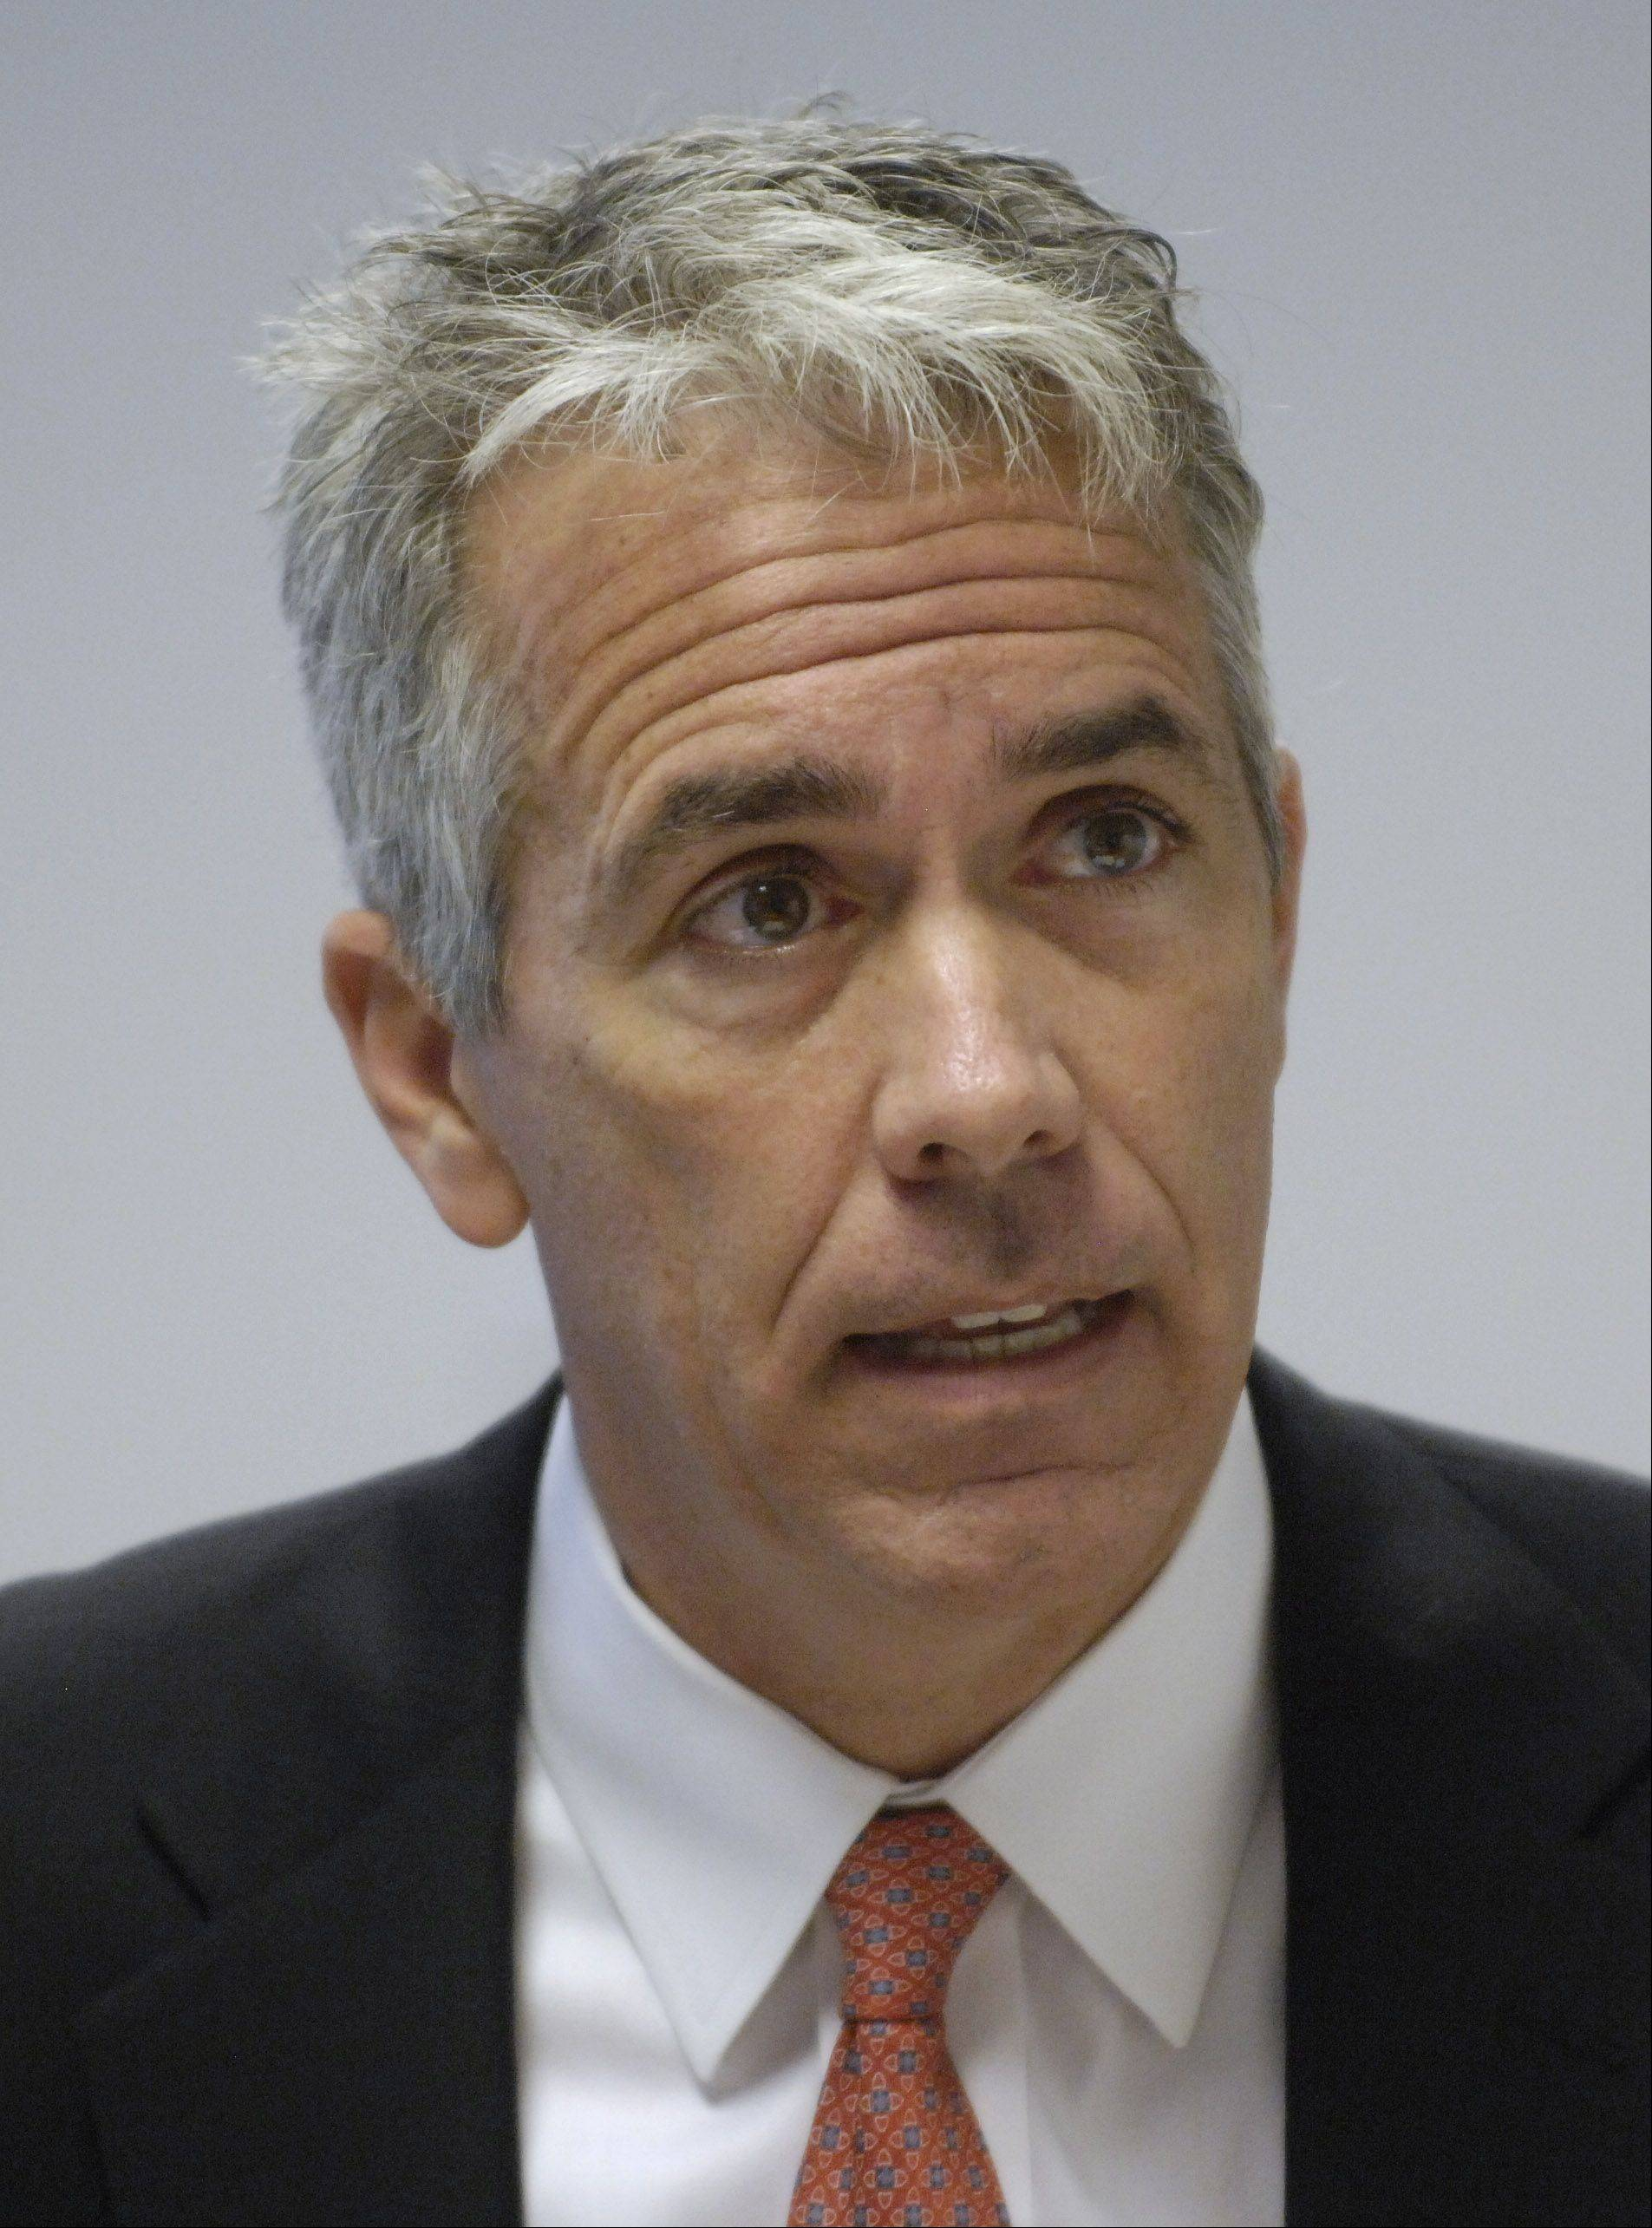 JOE LEWNARD/jlewnard@dailyherald.comCongressman Joe Walsh, running in the new 8th District, speaks during an endorsement interview with the Daily Herald.